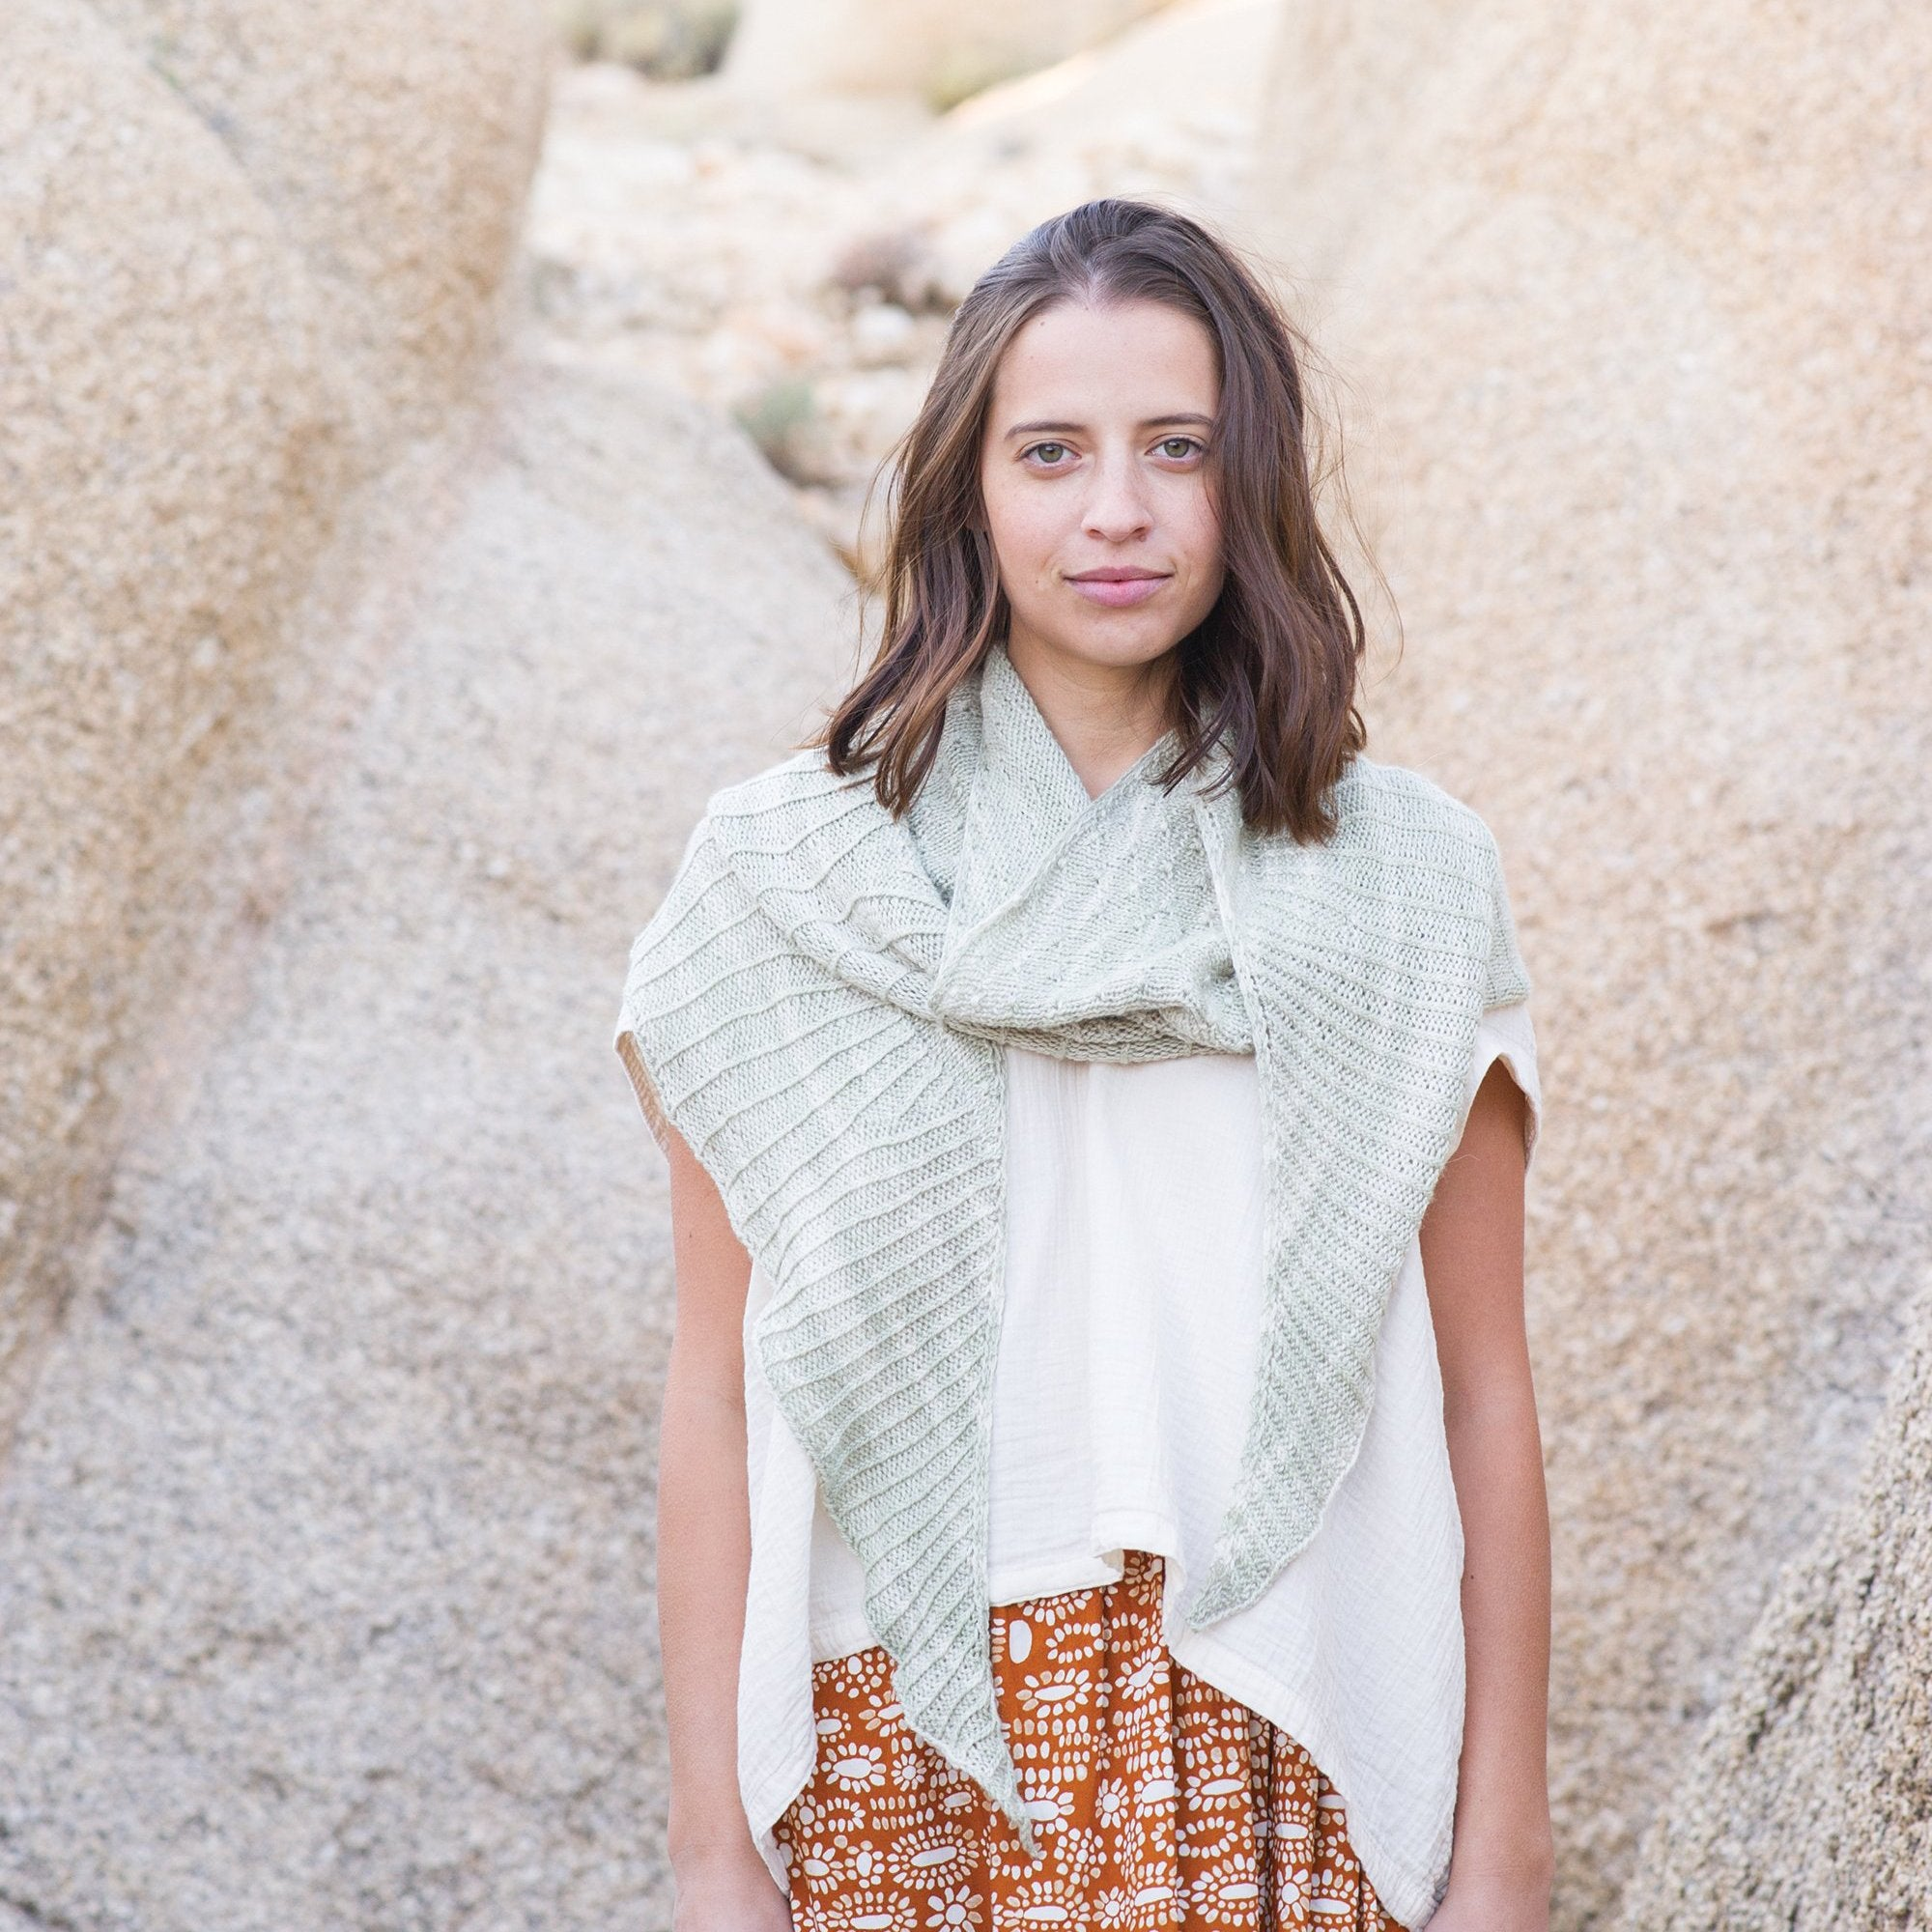 AVFKW x Amy van de Laar - Xerophyte Shawl Kit - Coming Soon